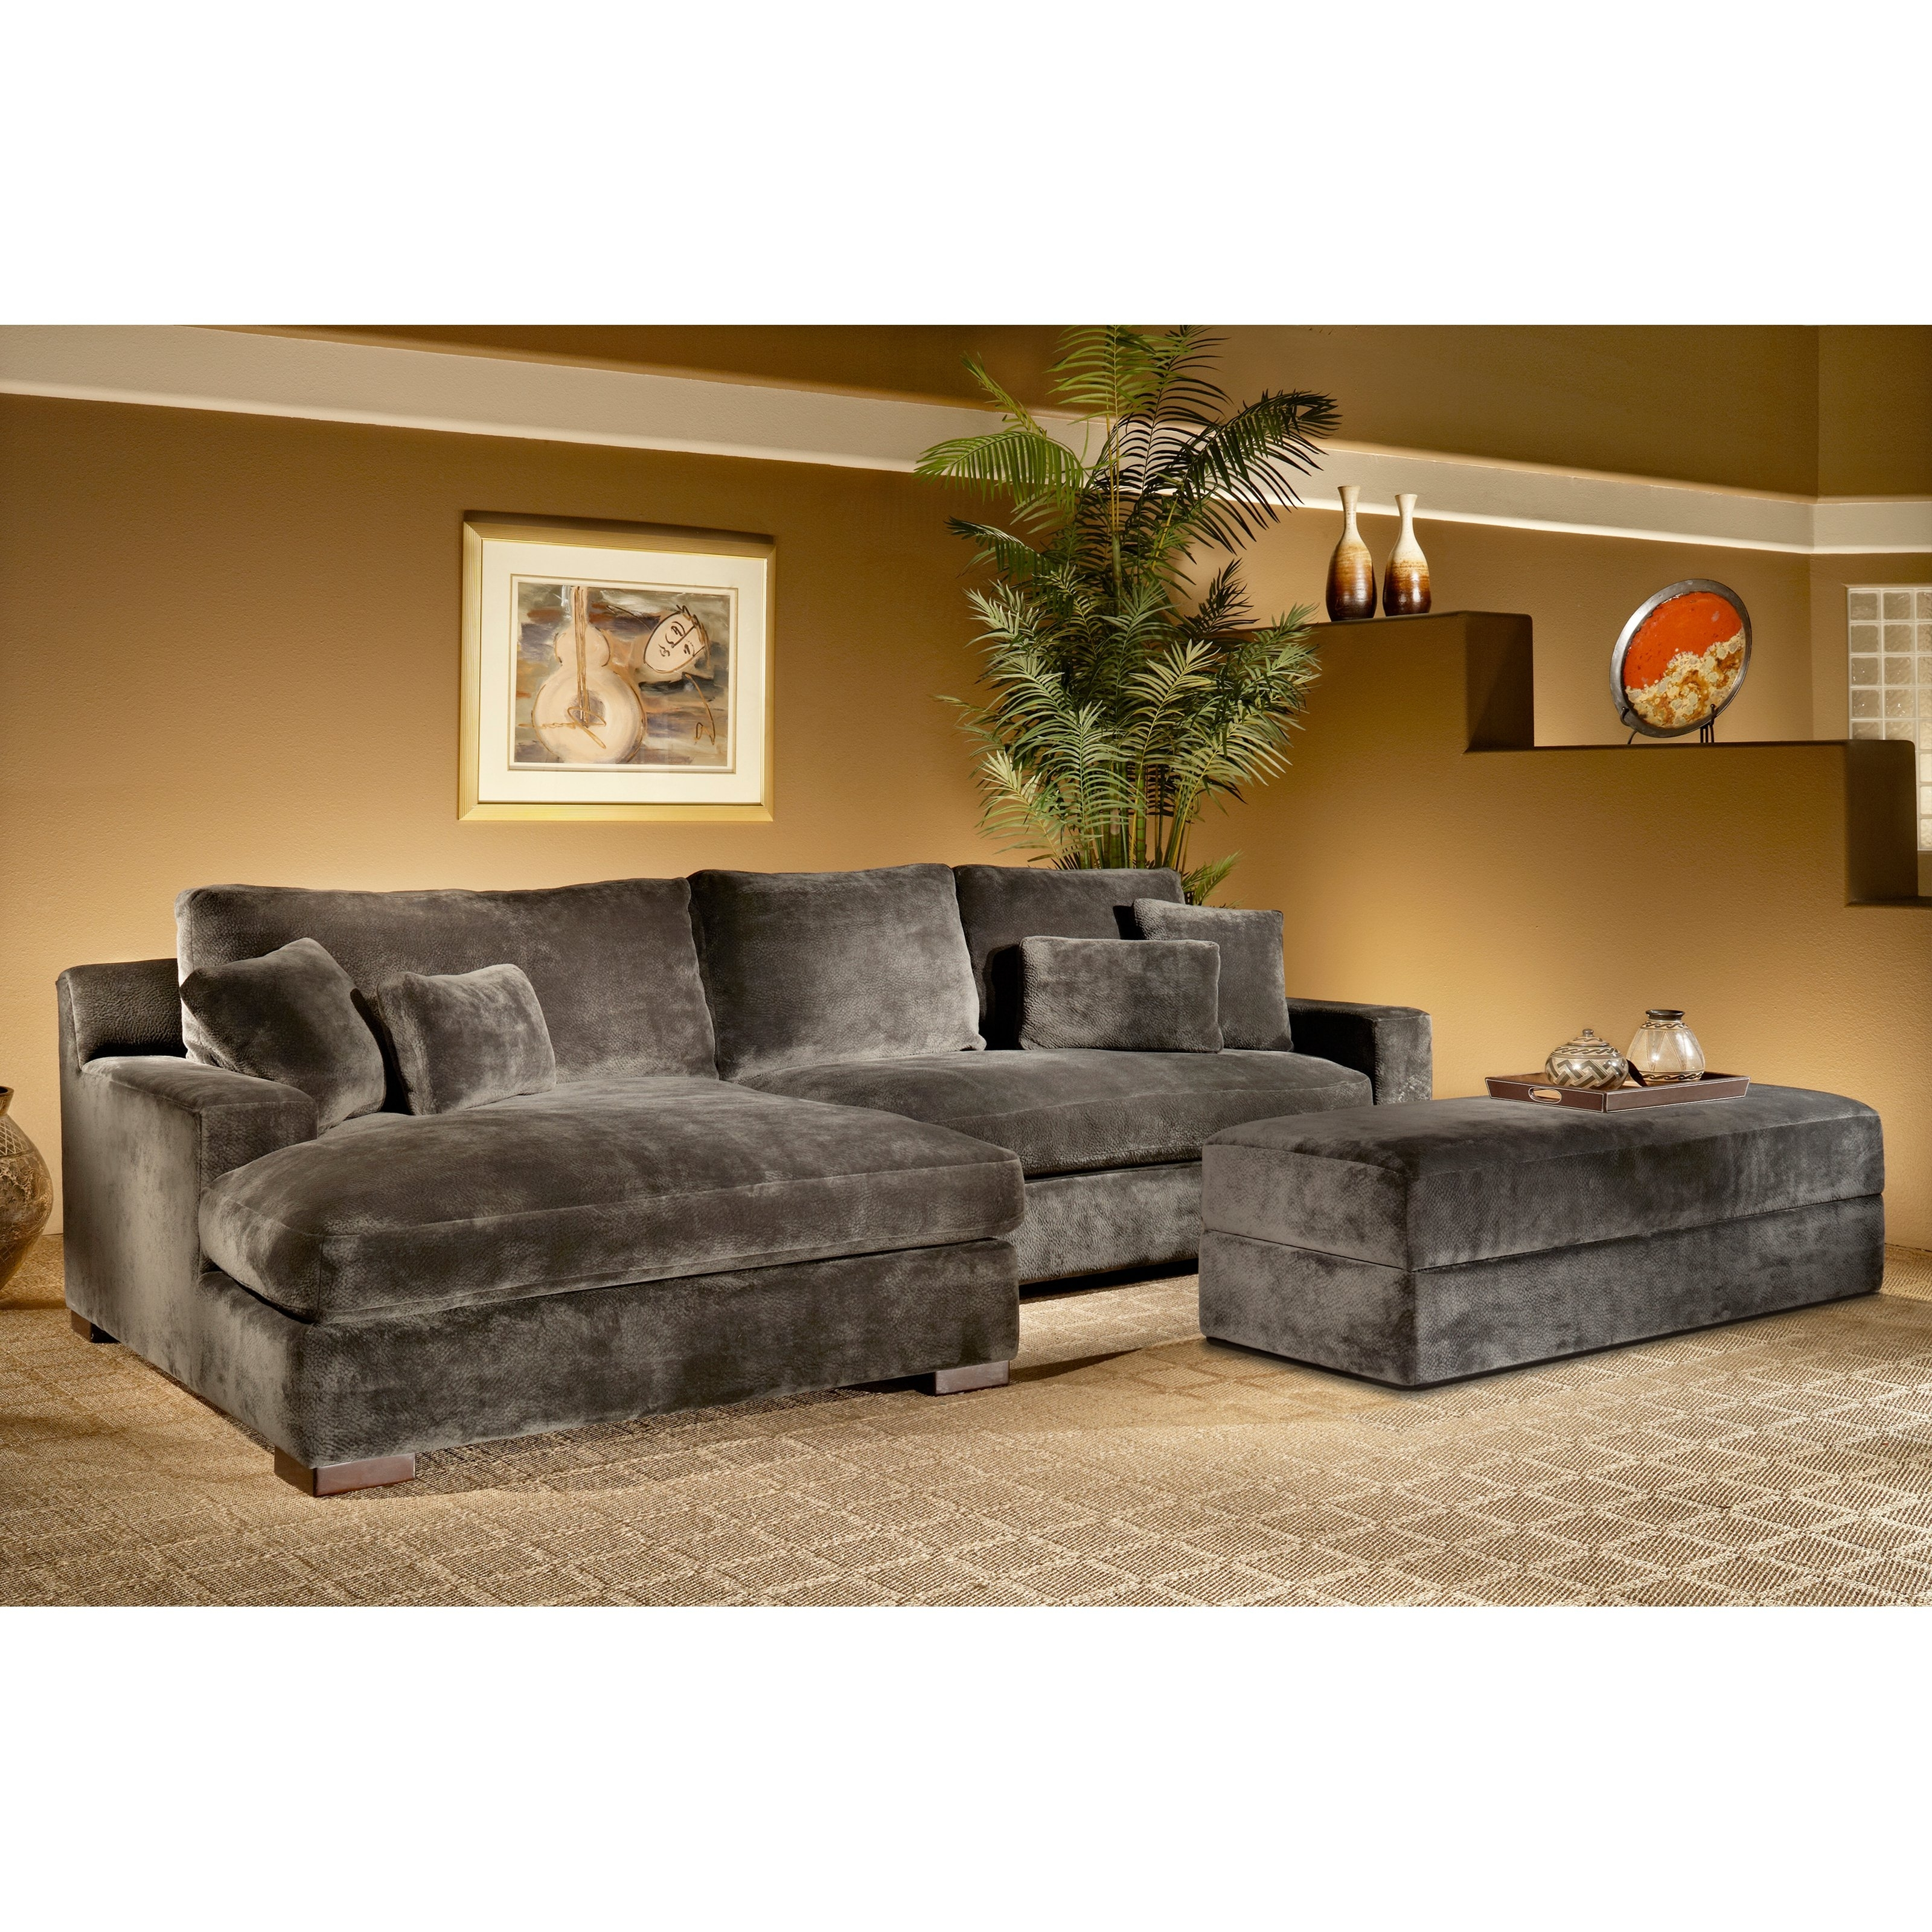 Excellent 2 Piece Sectional Sofa In Fairmont Designs Doris 2 Piece With Regard To Aspen 2 Piece Sectionals With Raf Chaise (Image 13 of 25)